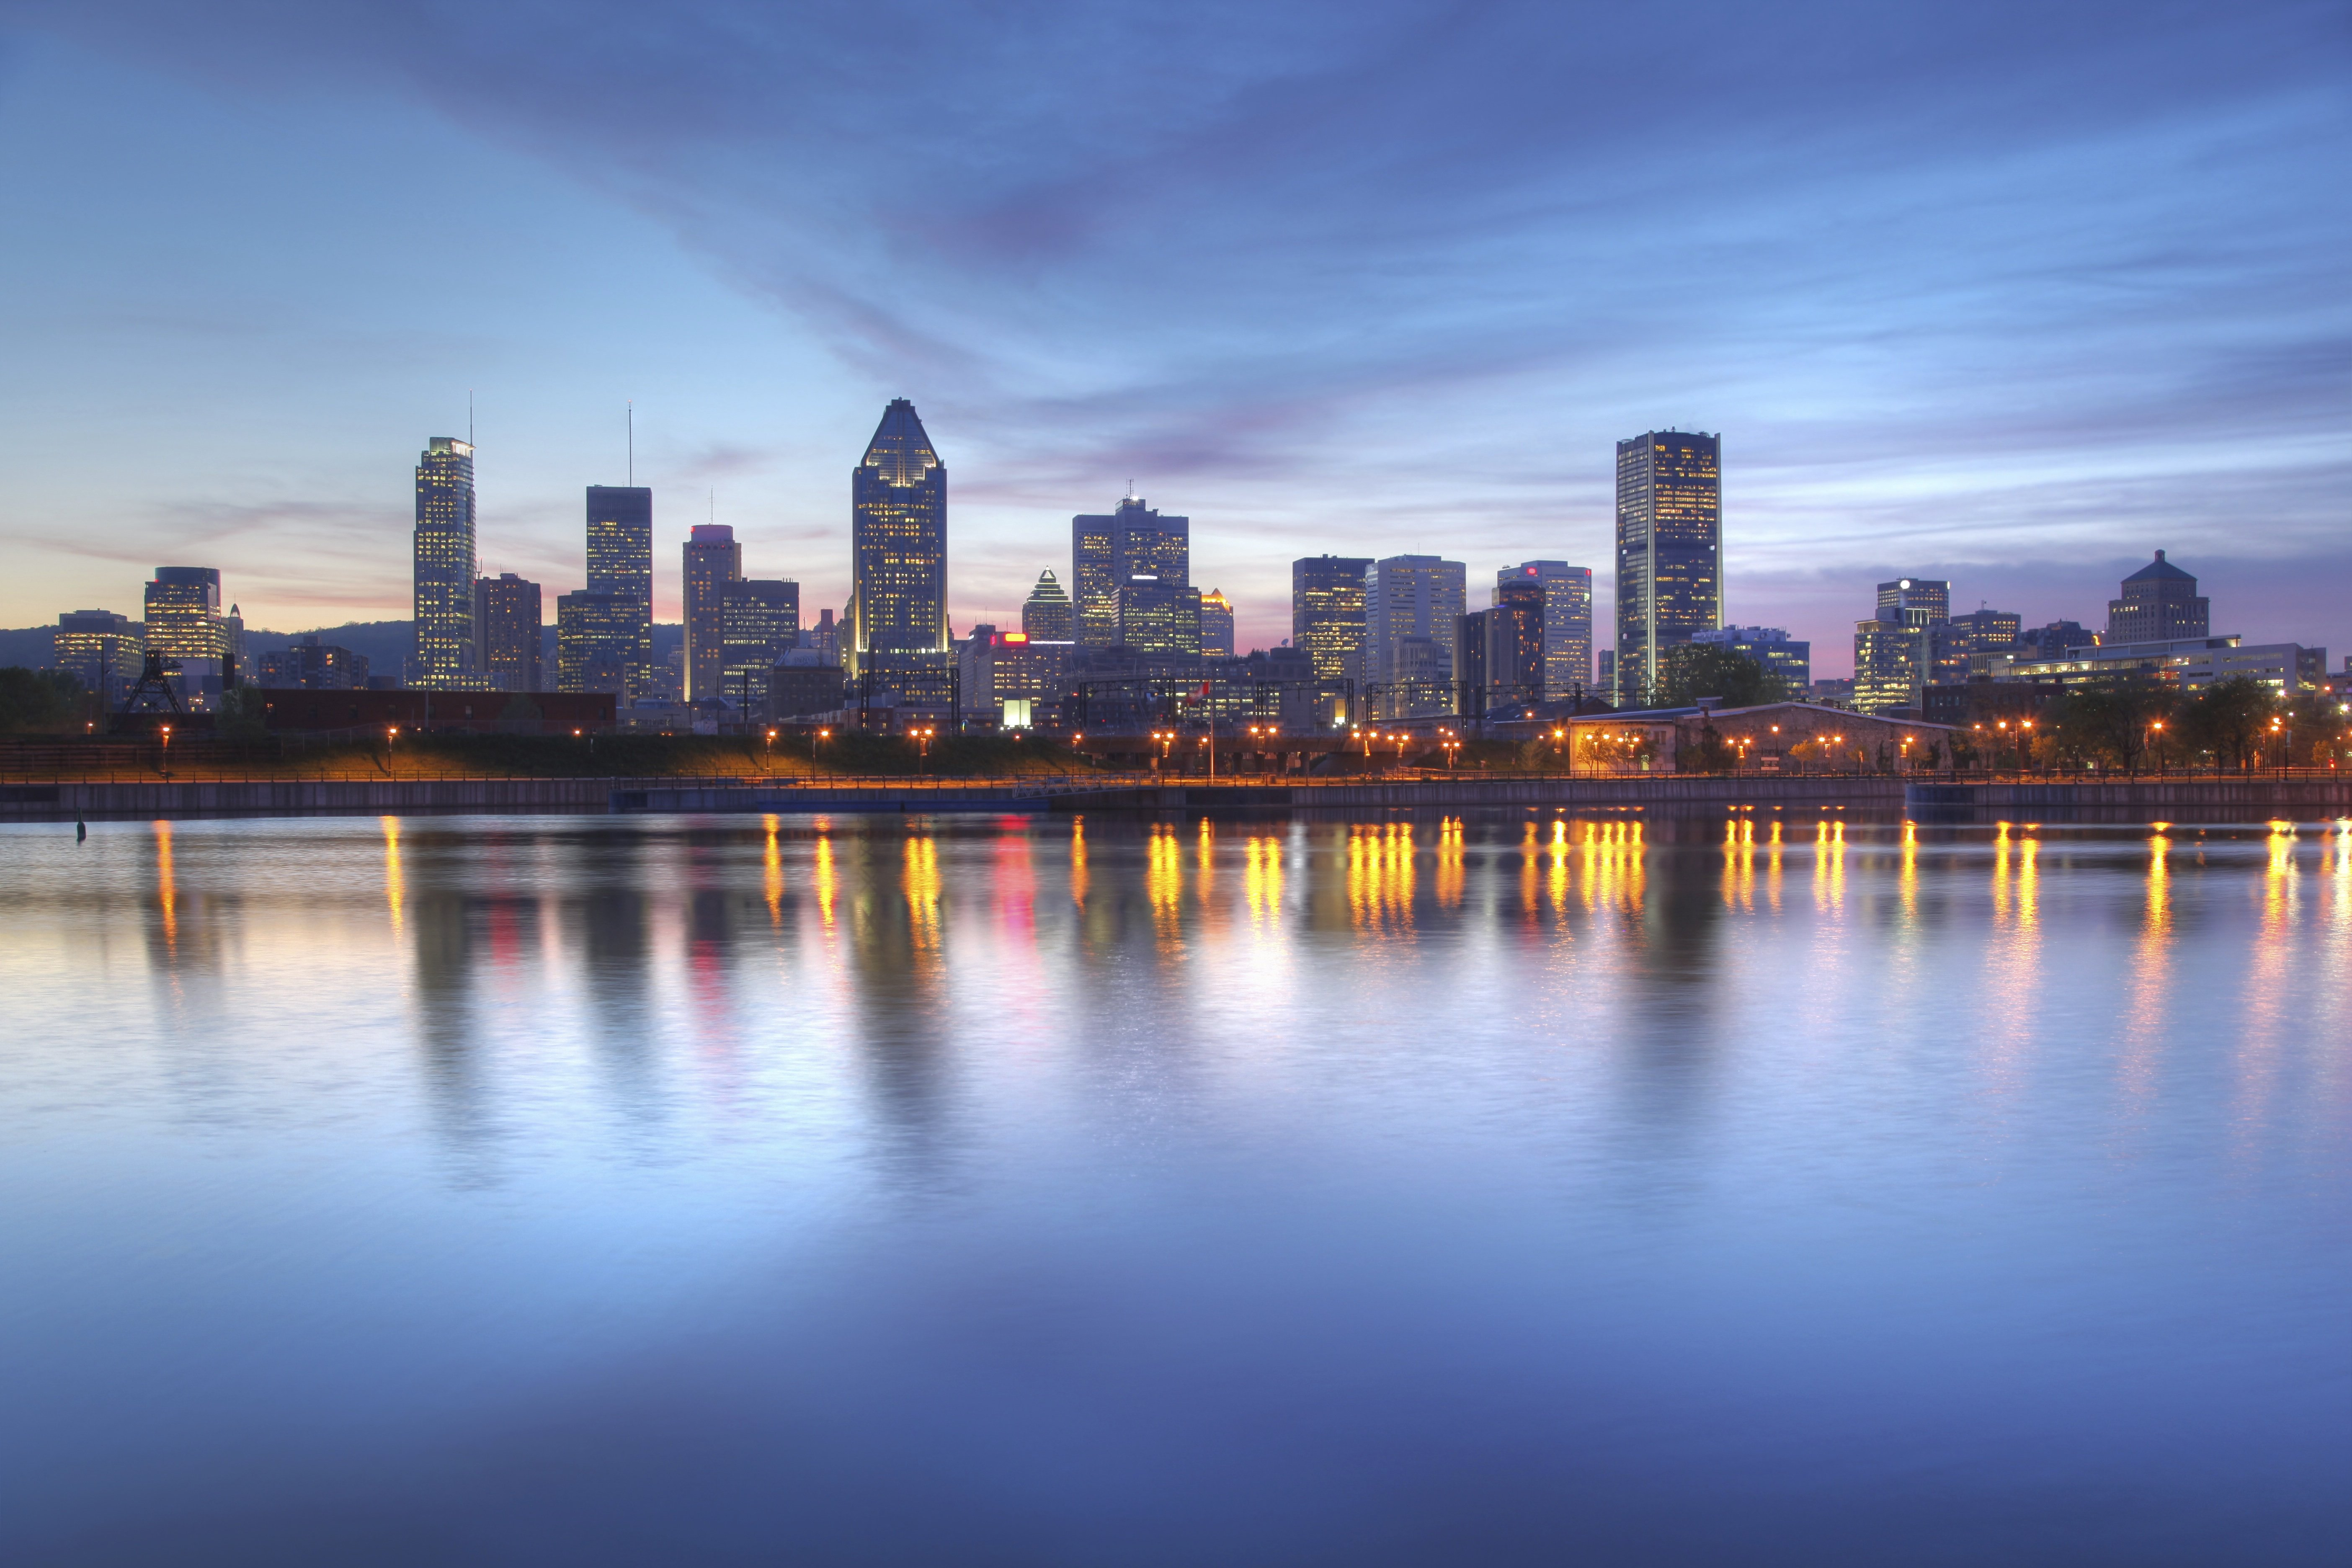 Montreal quebec canada building wallpaper 5616x3744 425025 wallpaperup - Wallpaper pictures ...